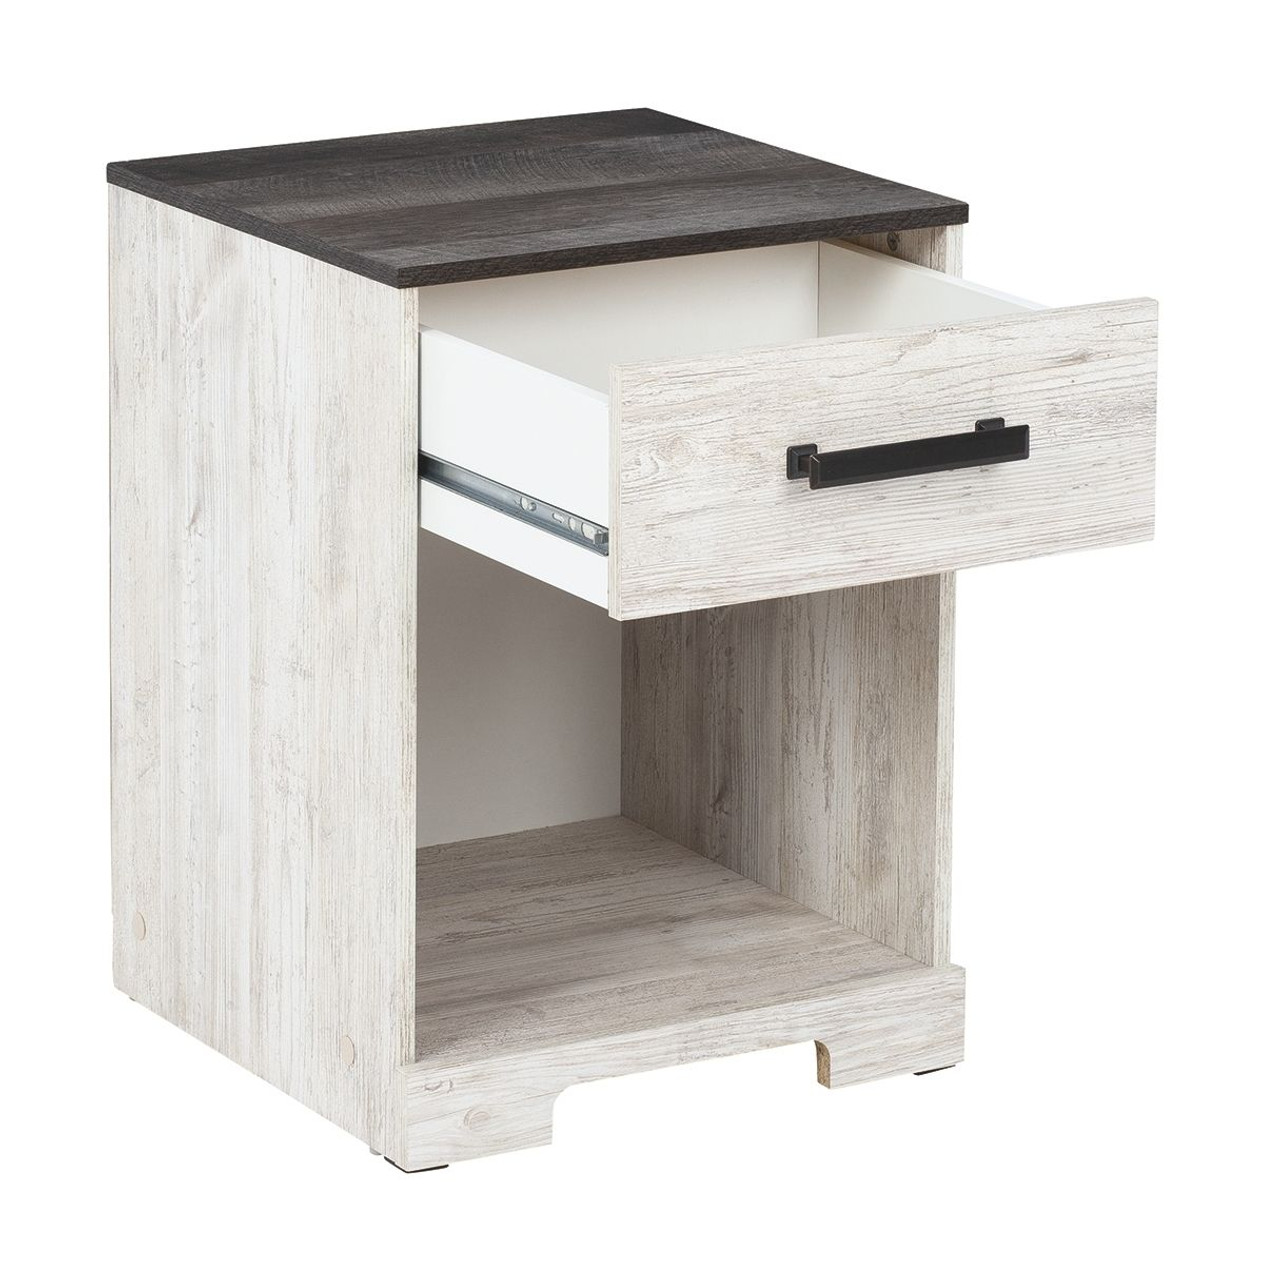 Shawburn White Dark Charcoal Gray One Drawer Night Stand Sold At Hilton Furniture Serving Houston Tx Ands Surrounding Areas